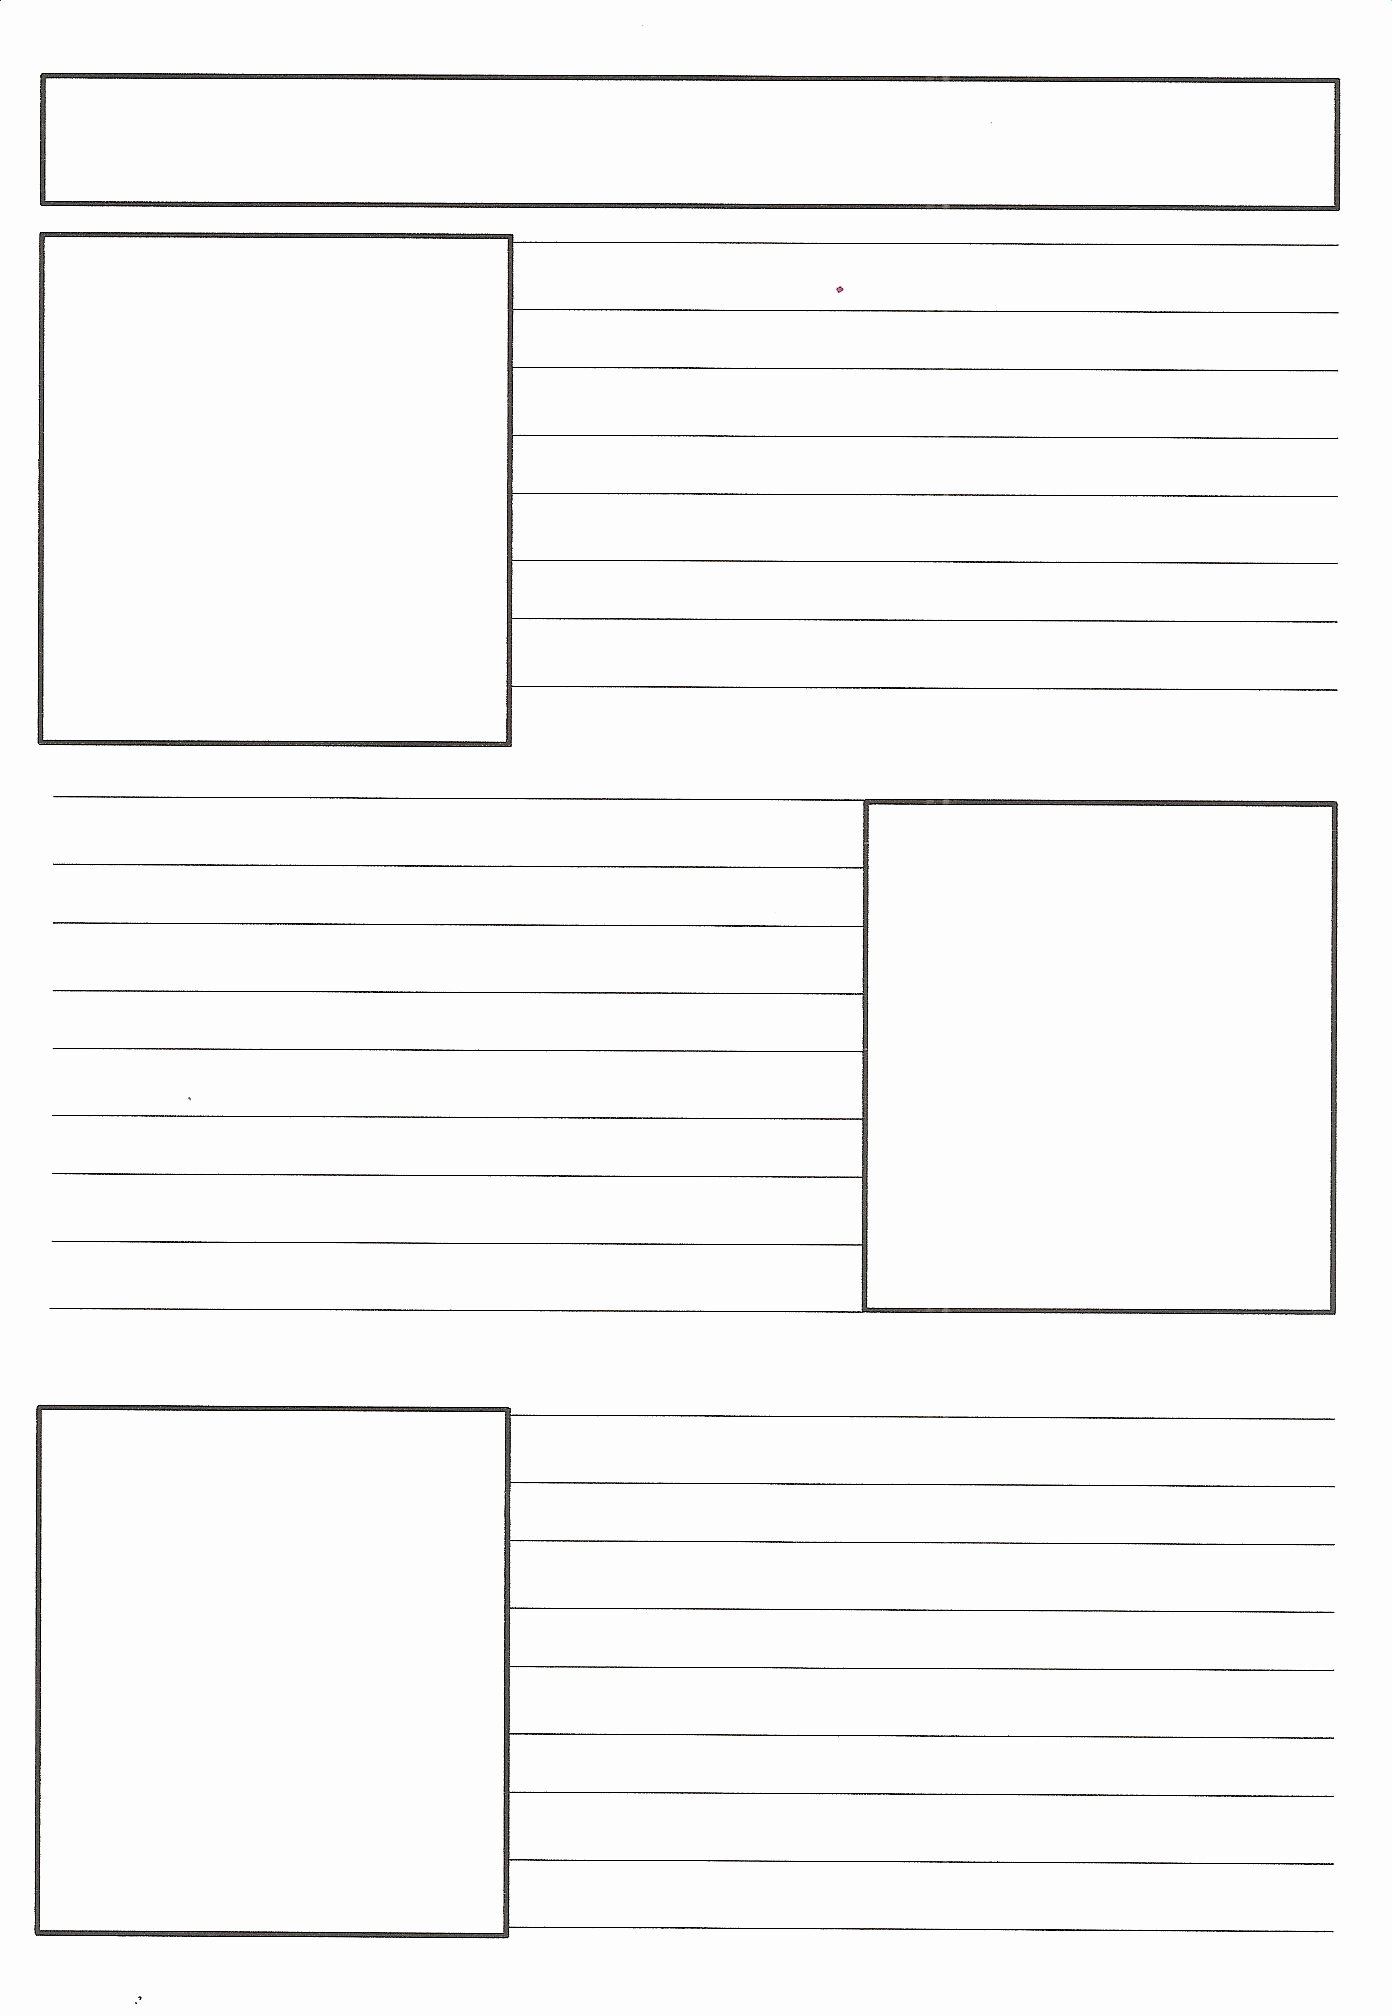 Free Newspaper Template for Students Unique Blank Newspaper Template